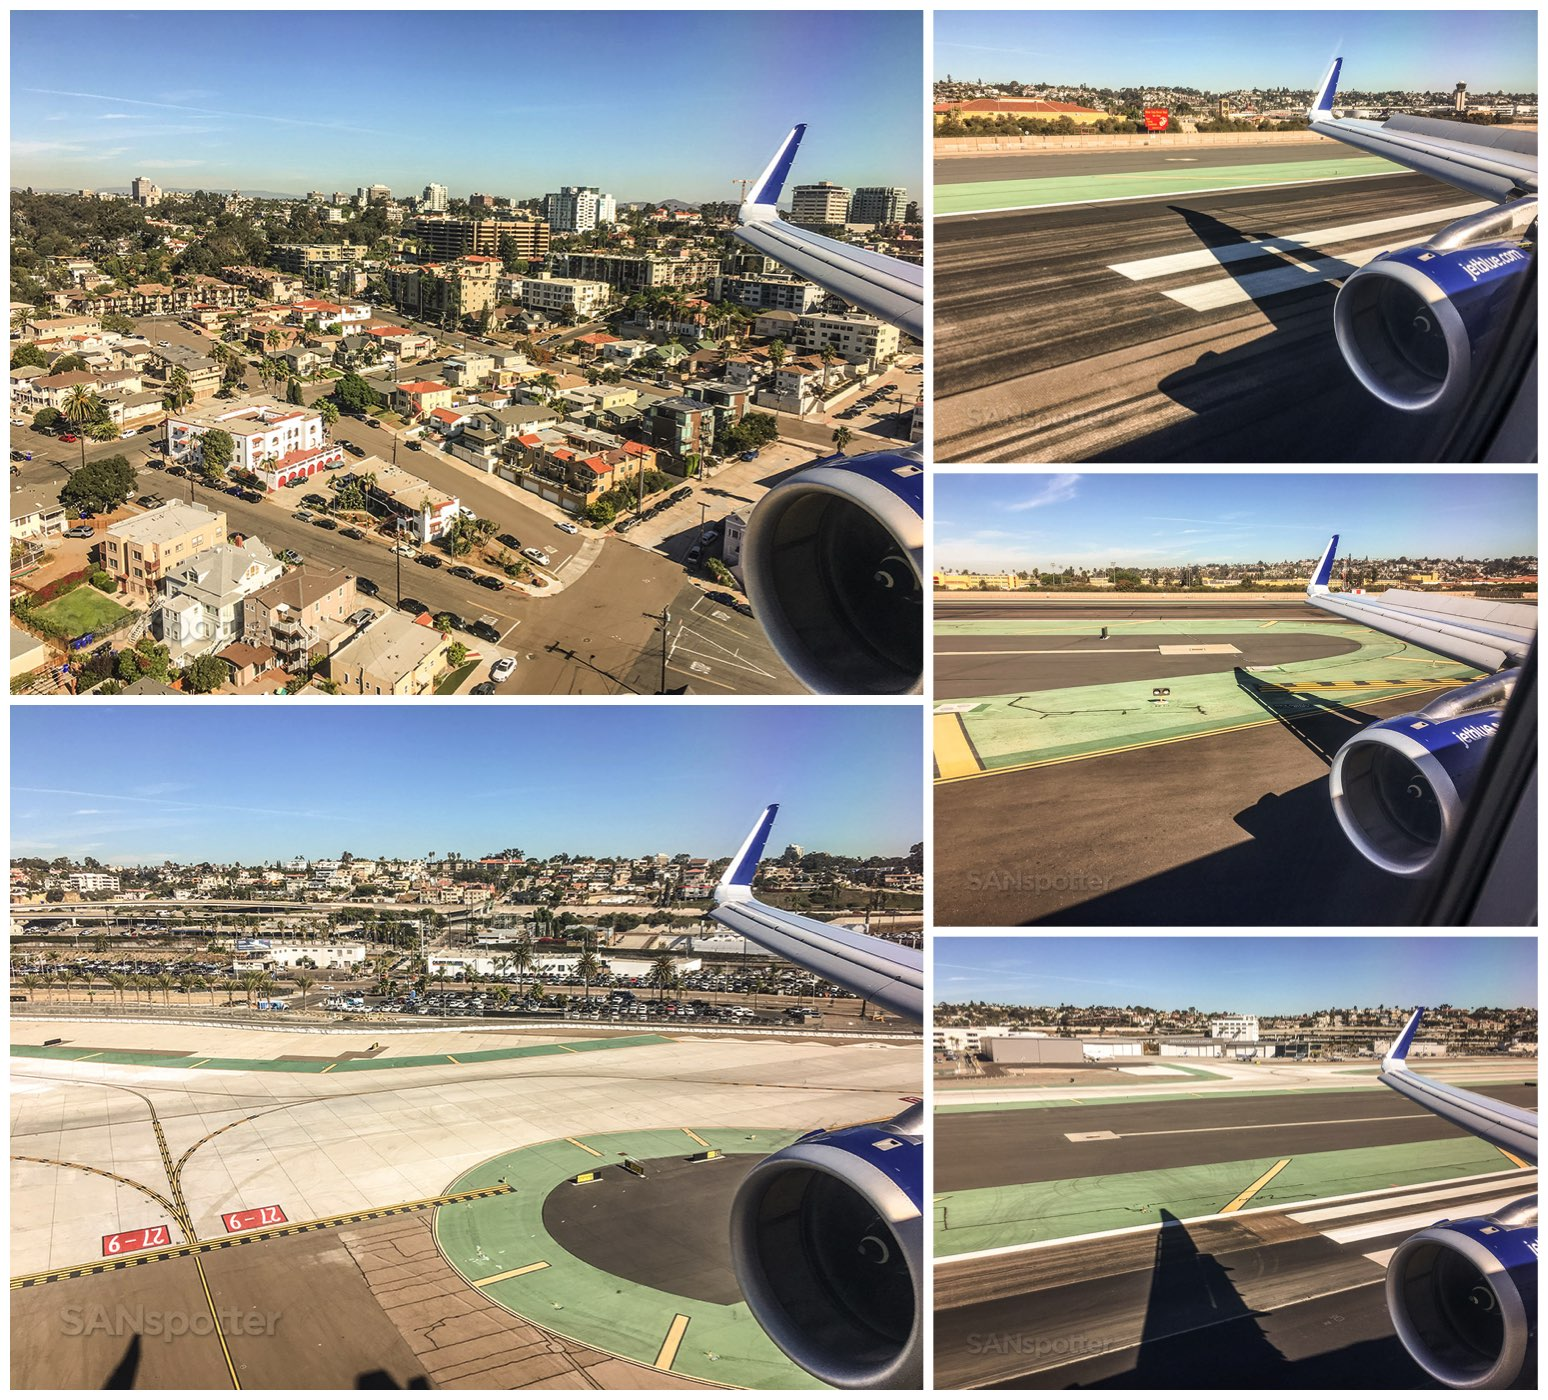 Landing at San Diego international airport